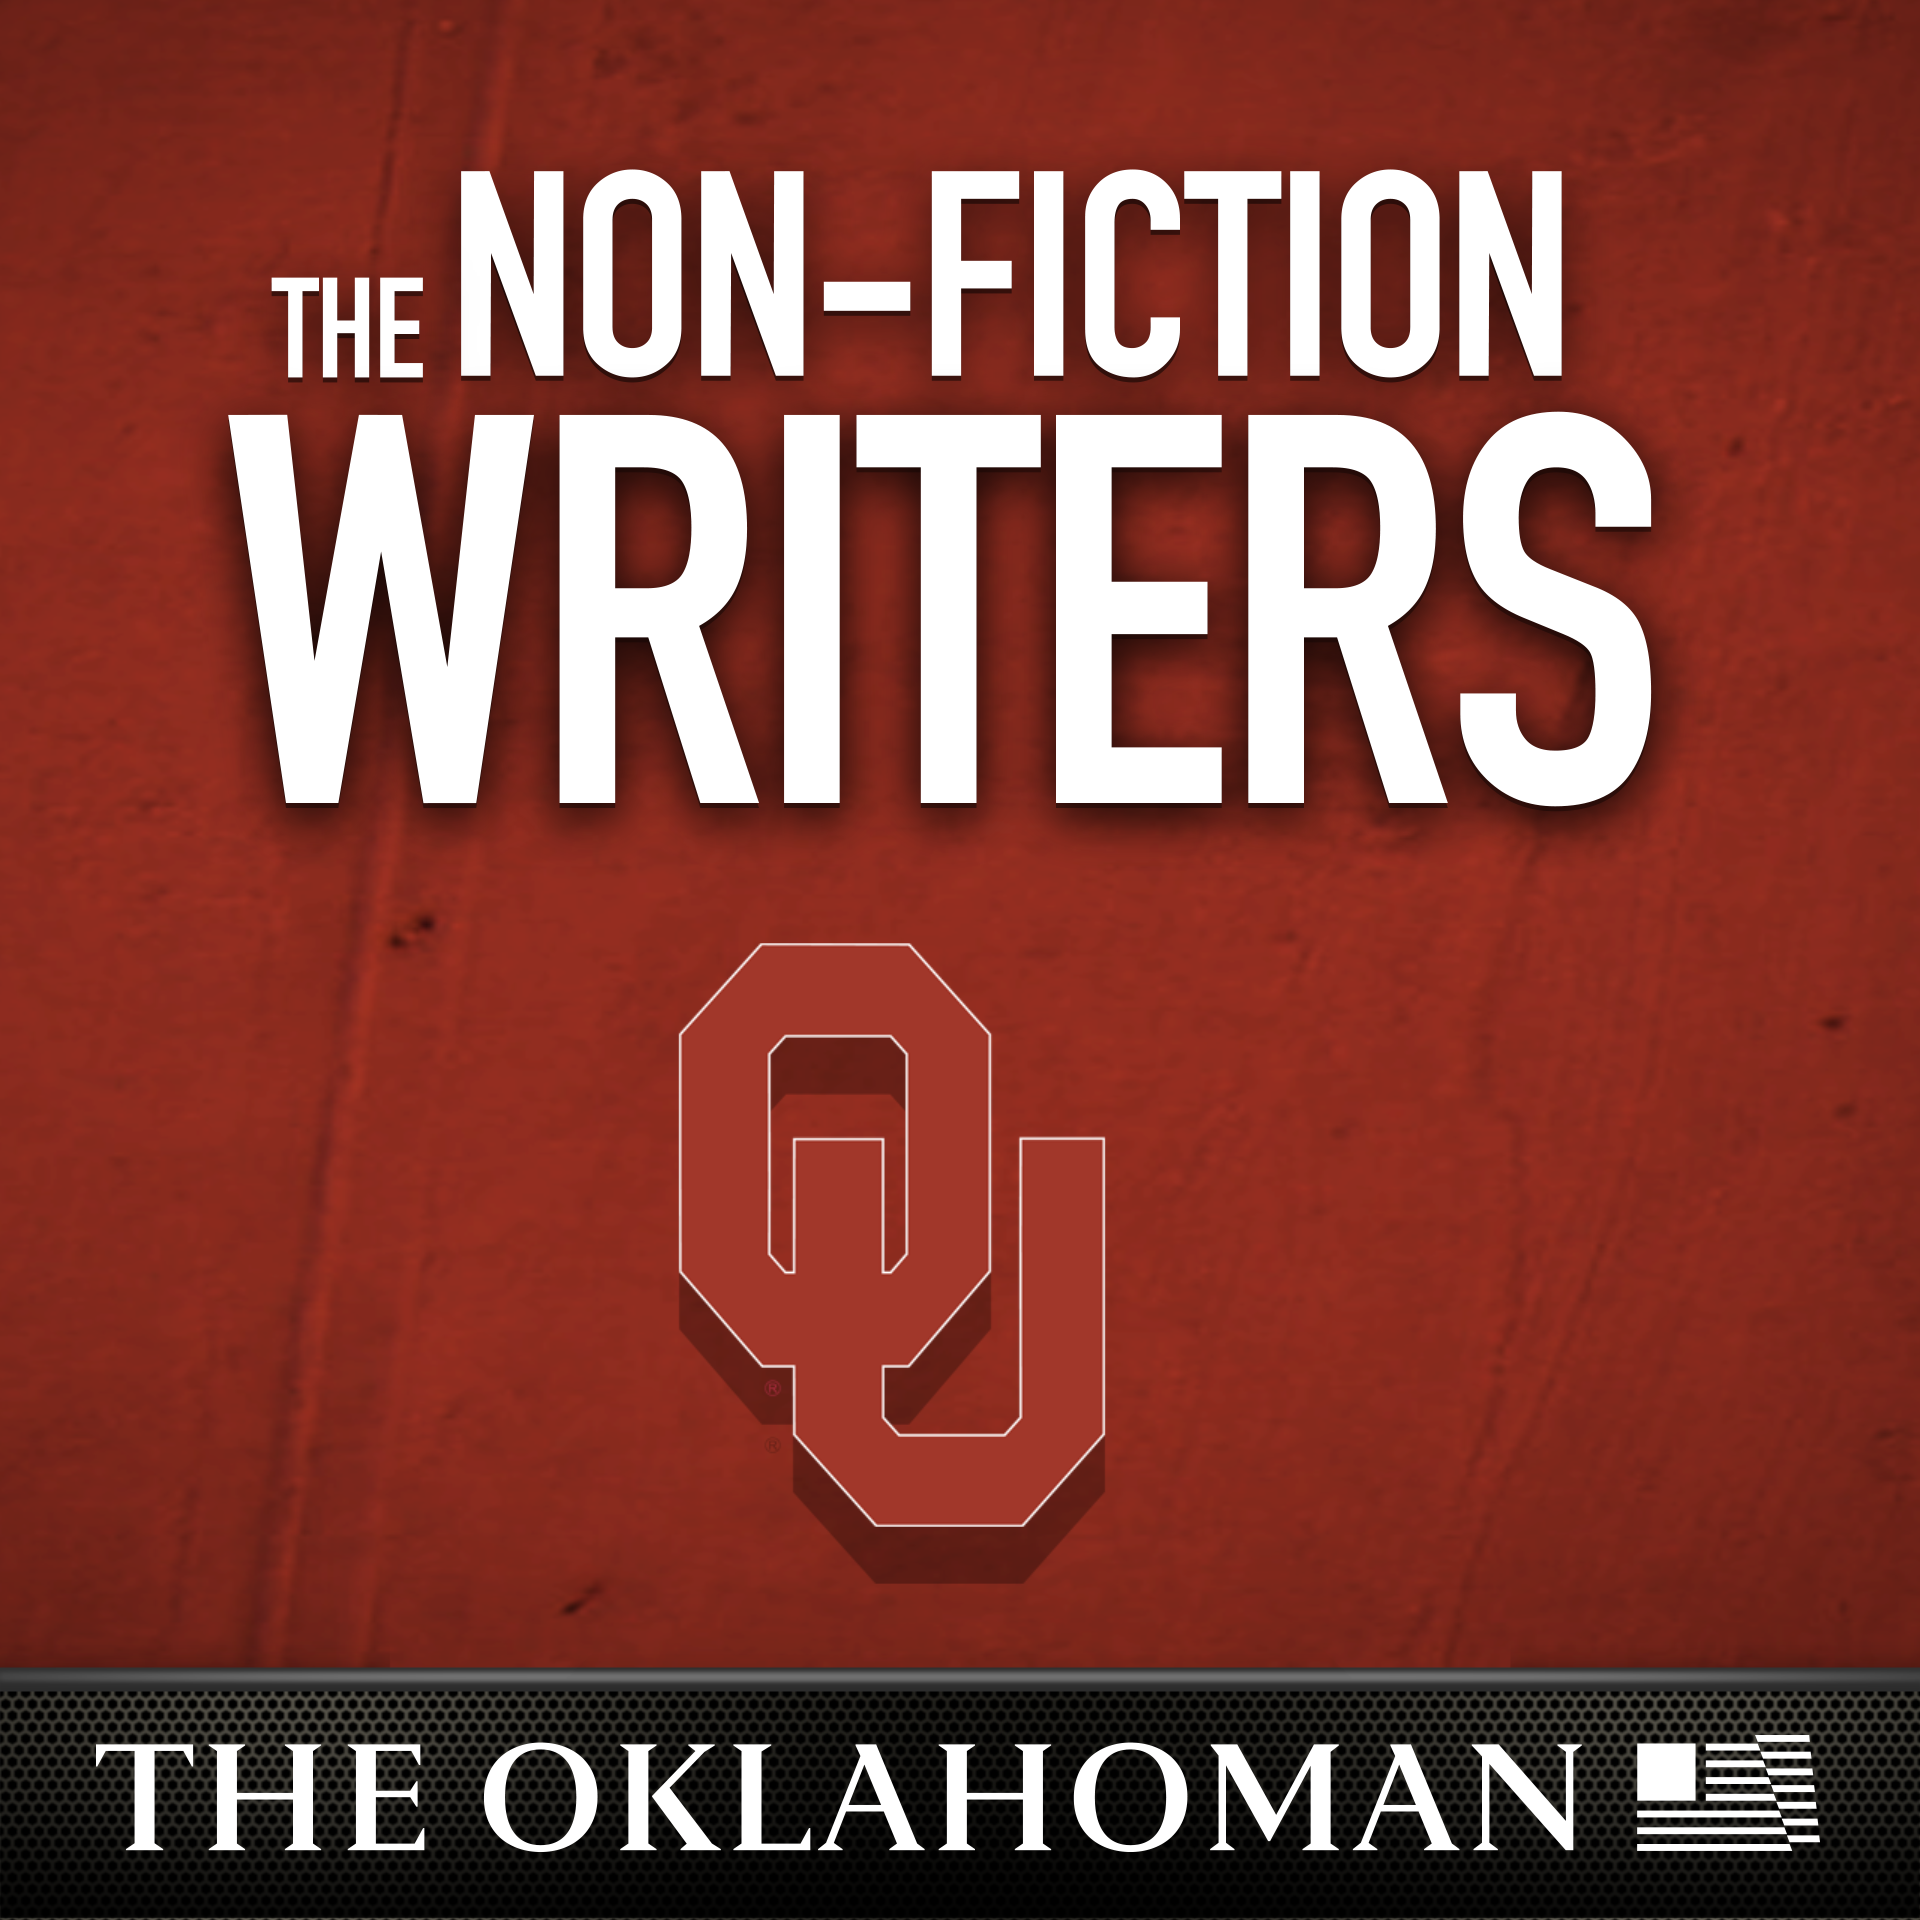 The Non-Fiction Writers